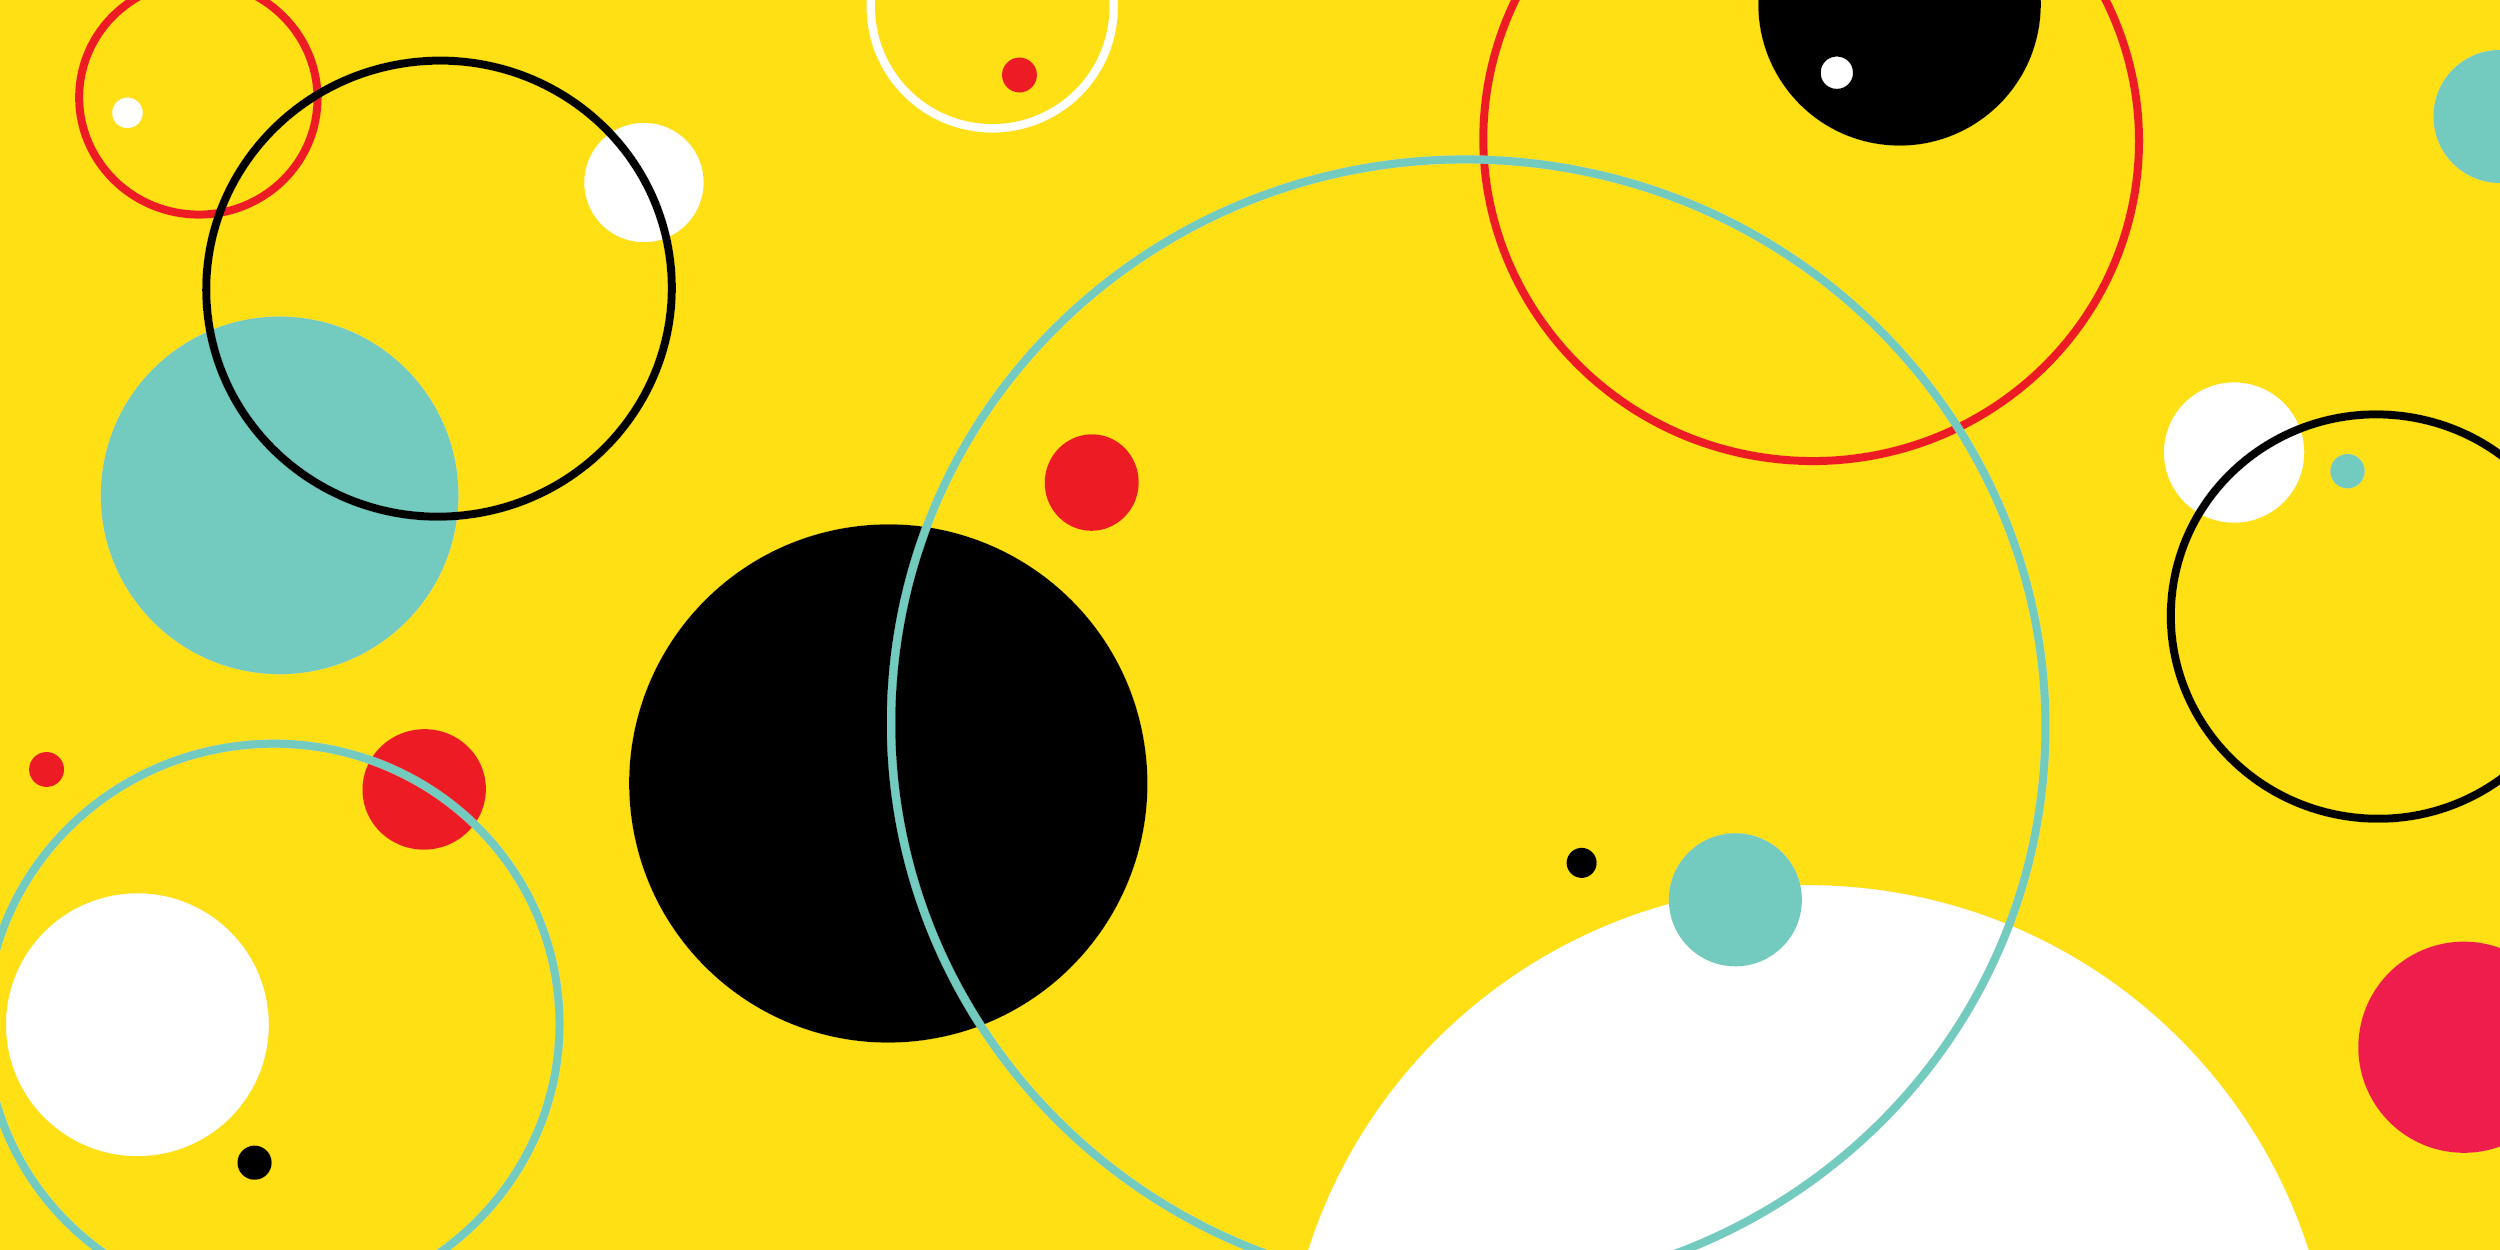 a composition of colorful circles and rings against a yellow background